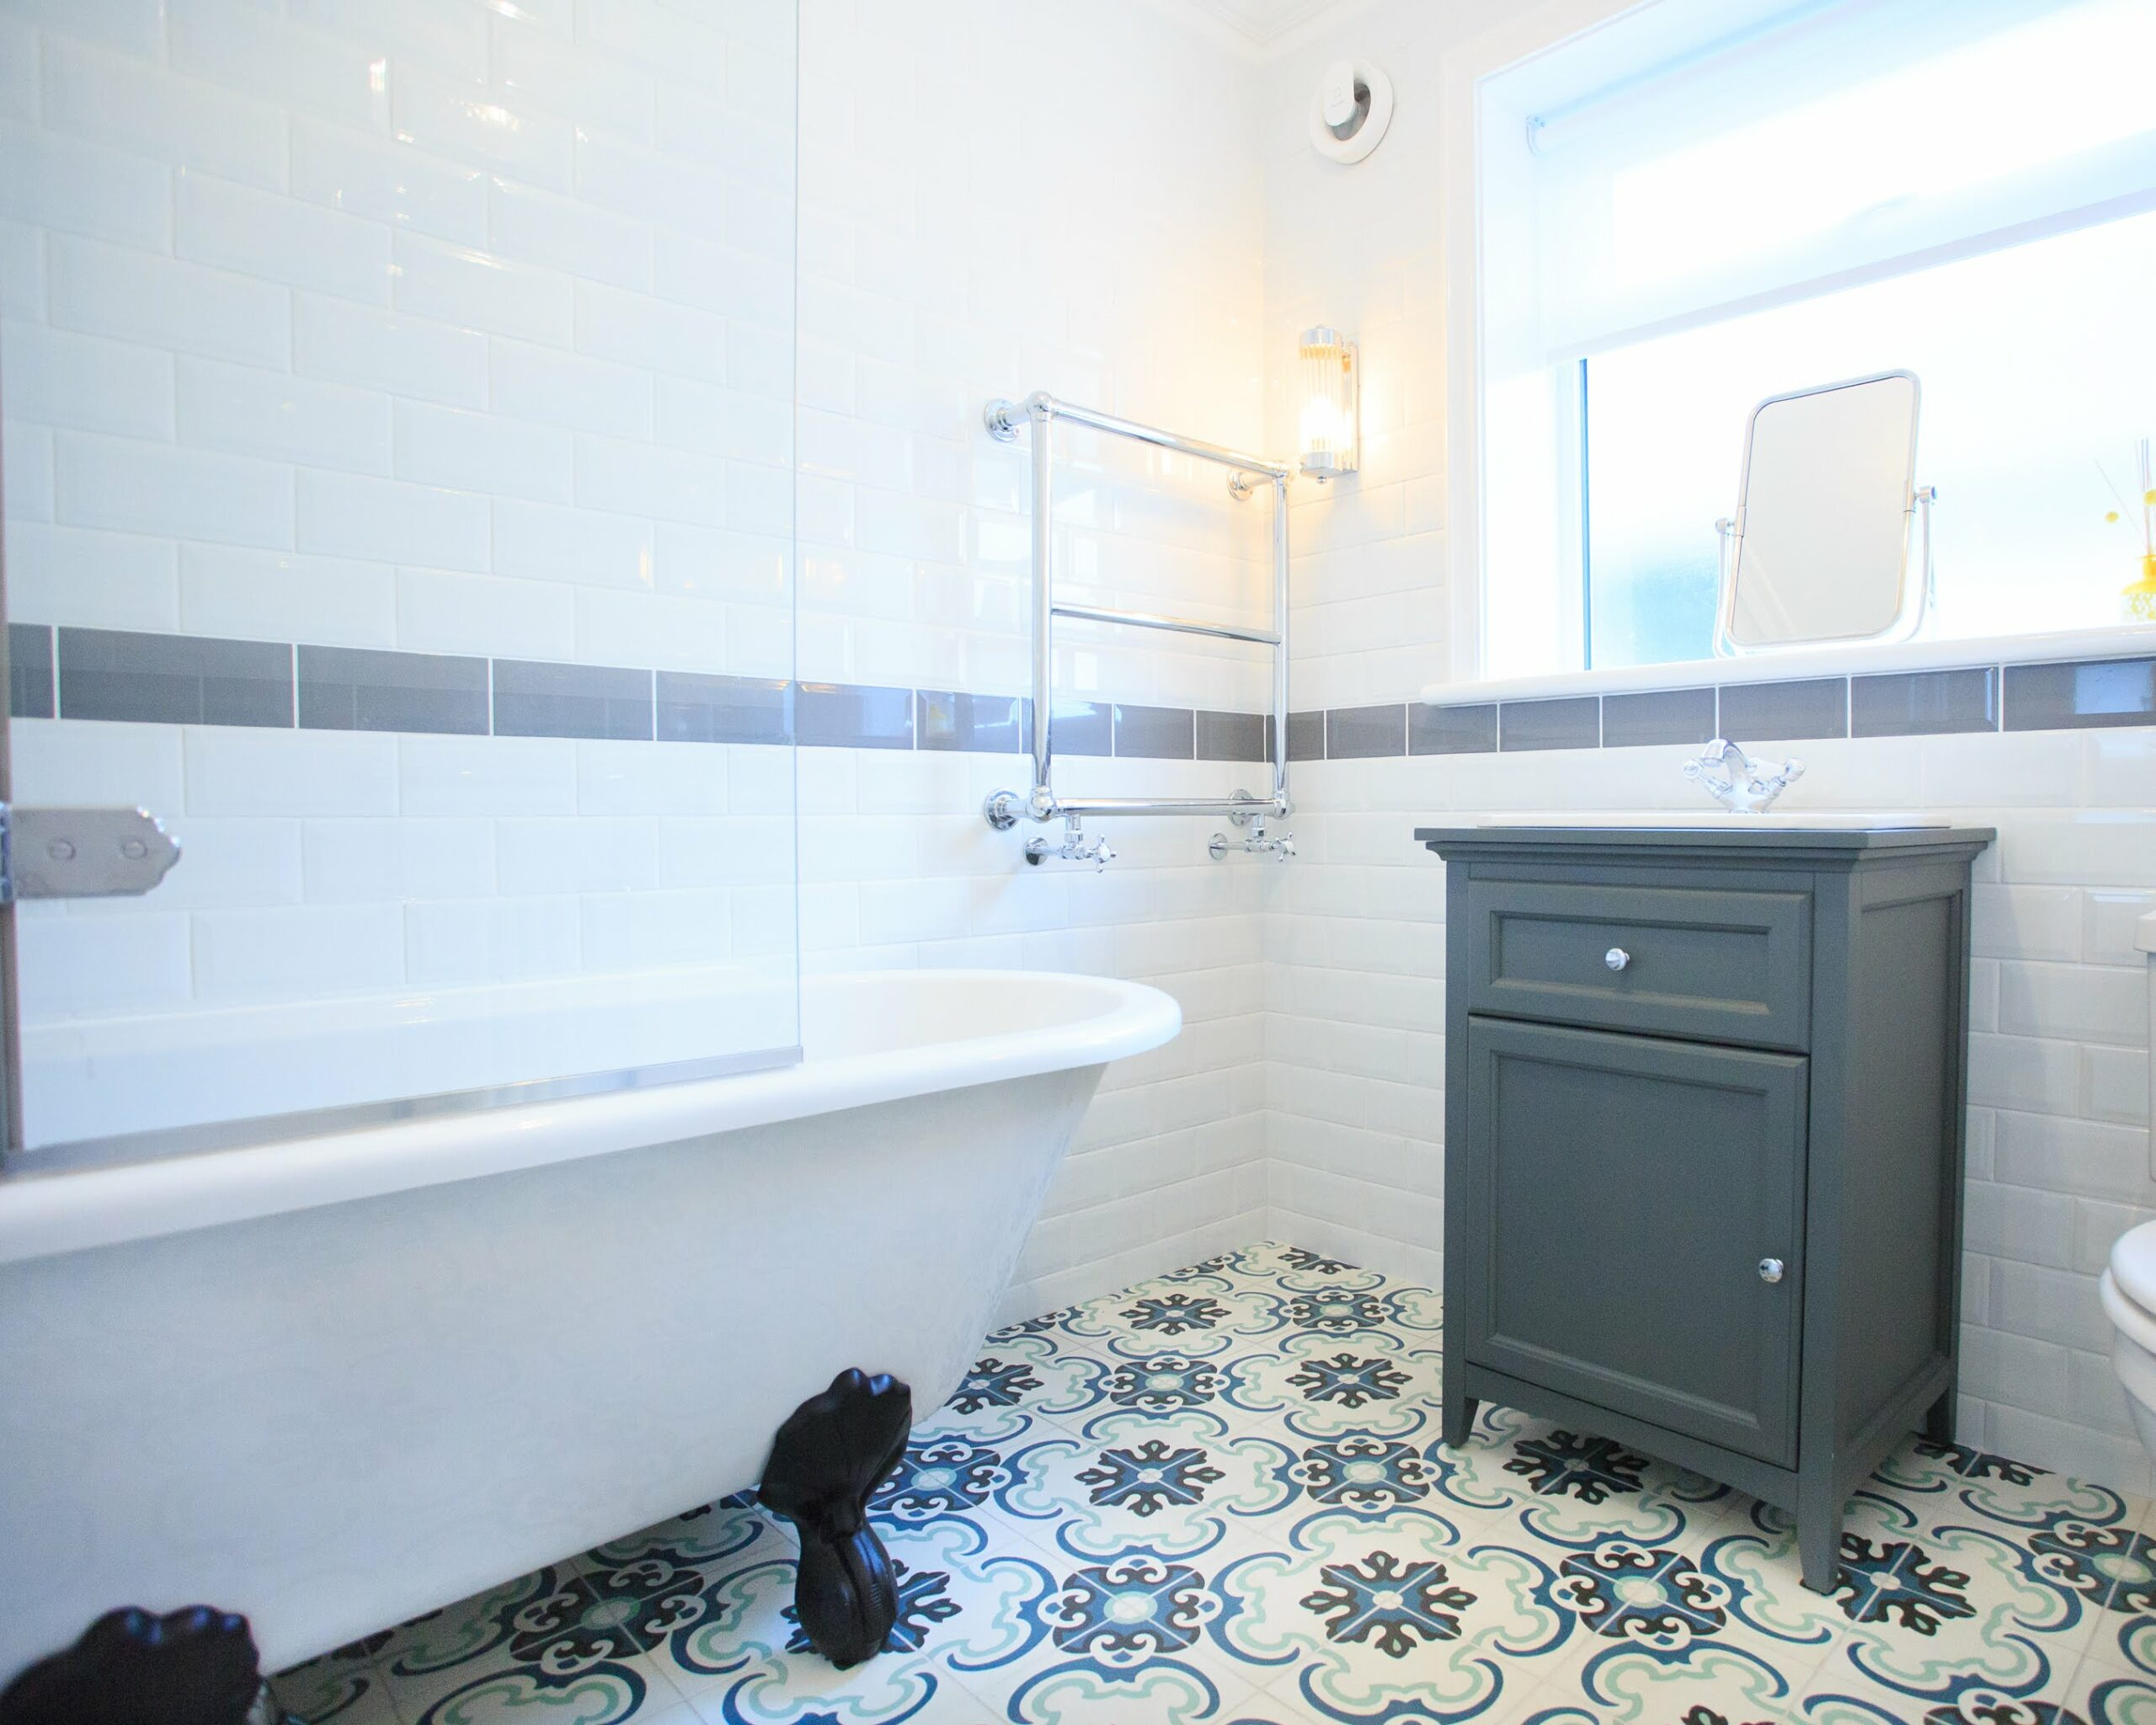 Victorian style bathroom, patterned floor tiles, white wall tiles, roll top bath